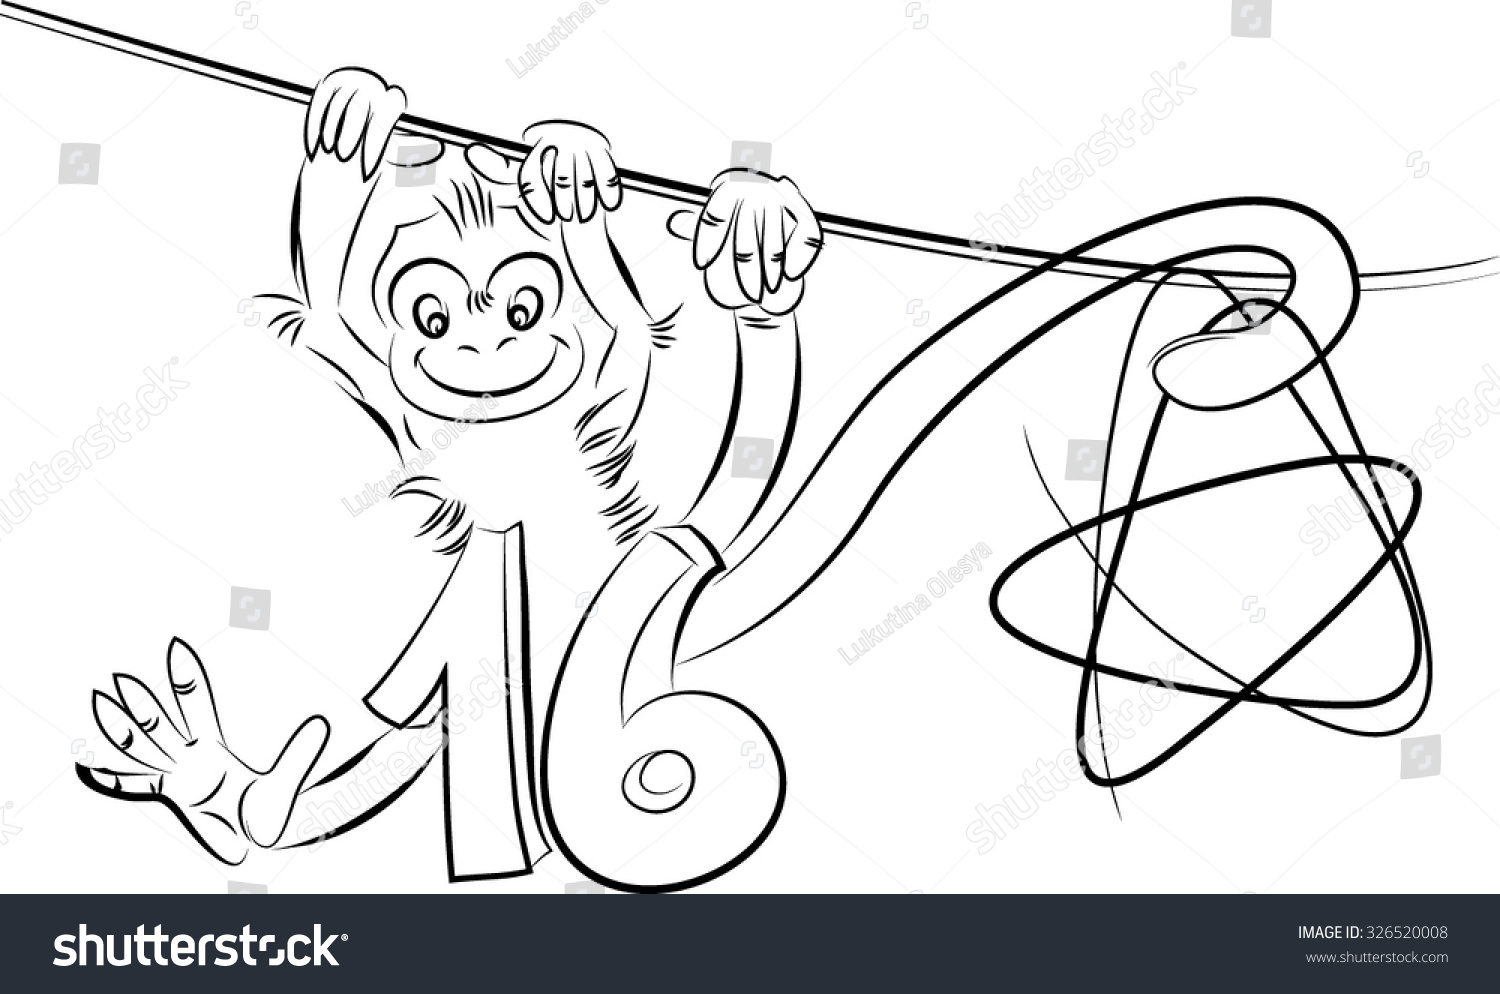 New Monkey Sketch Line Drawing One Color Hanging On The Tail